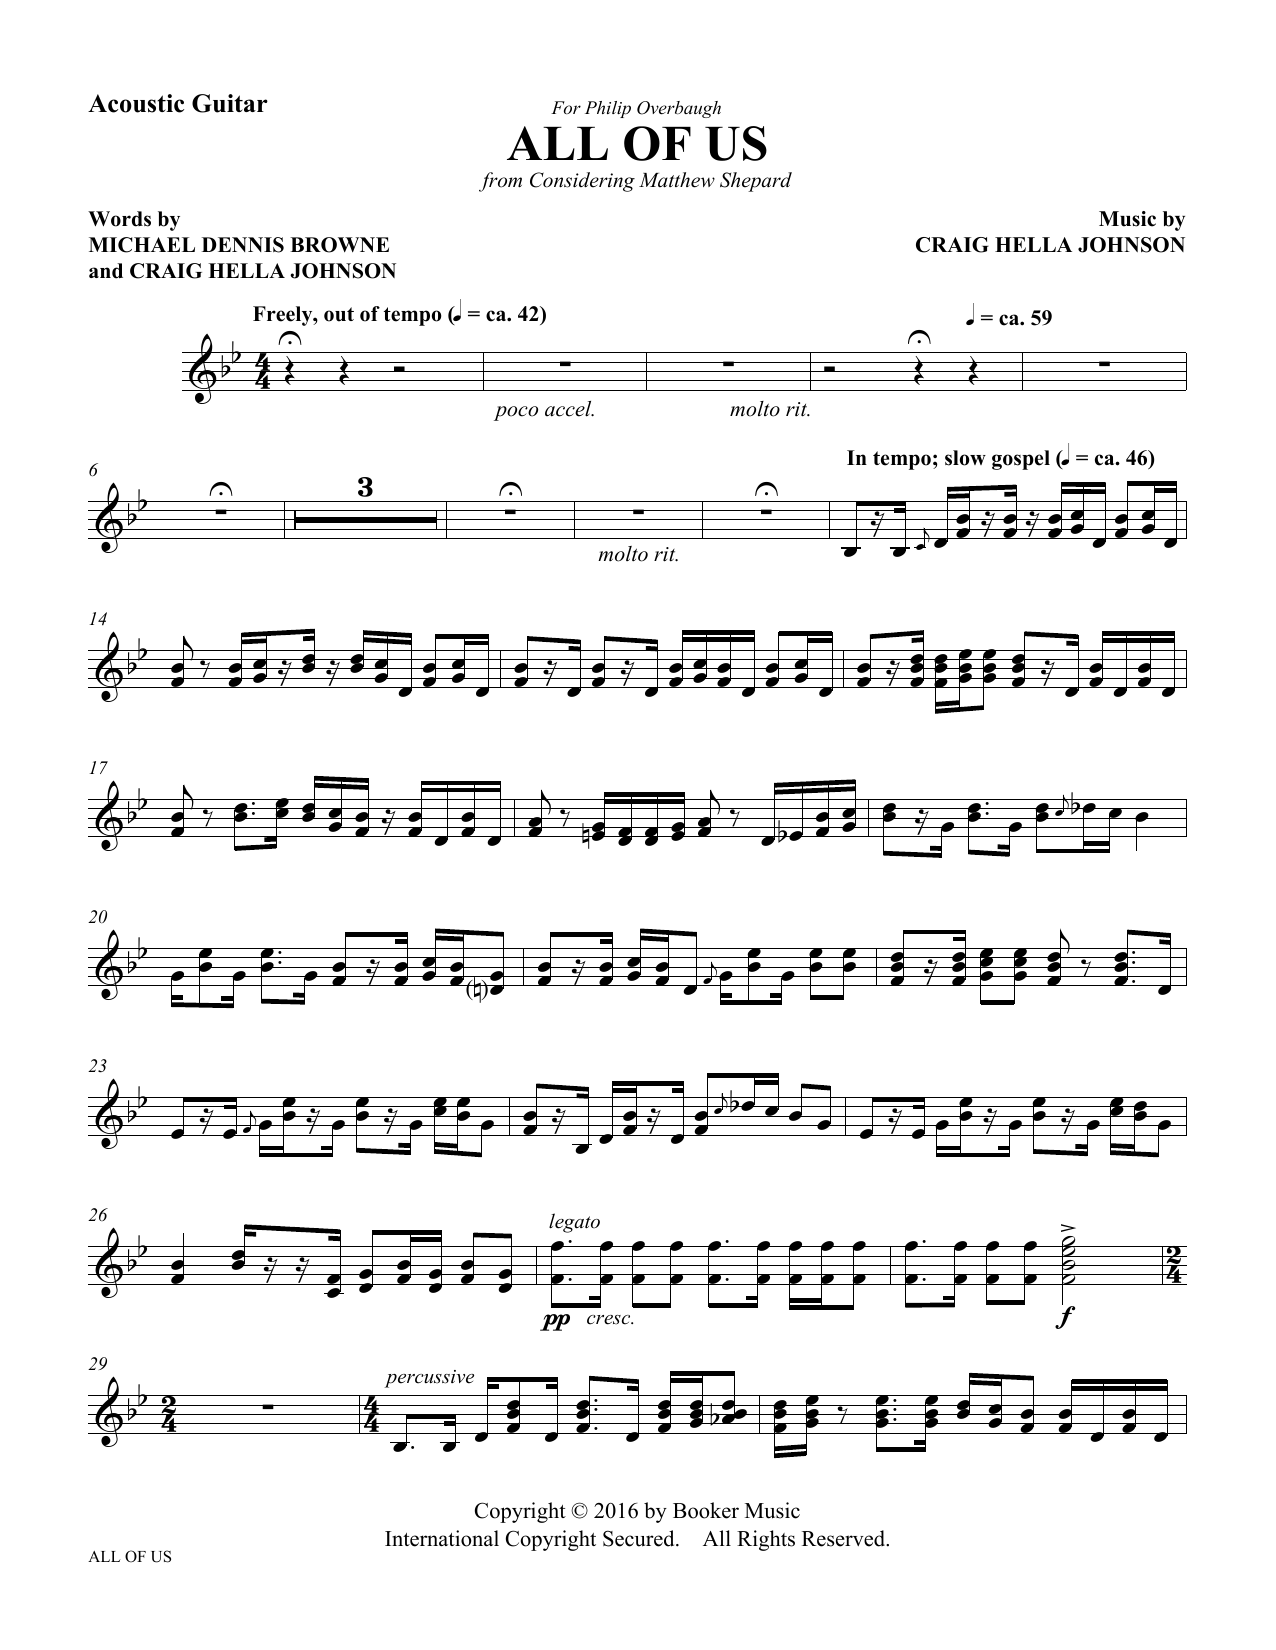 All of Us - Acoustic Guitar Sheet Music